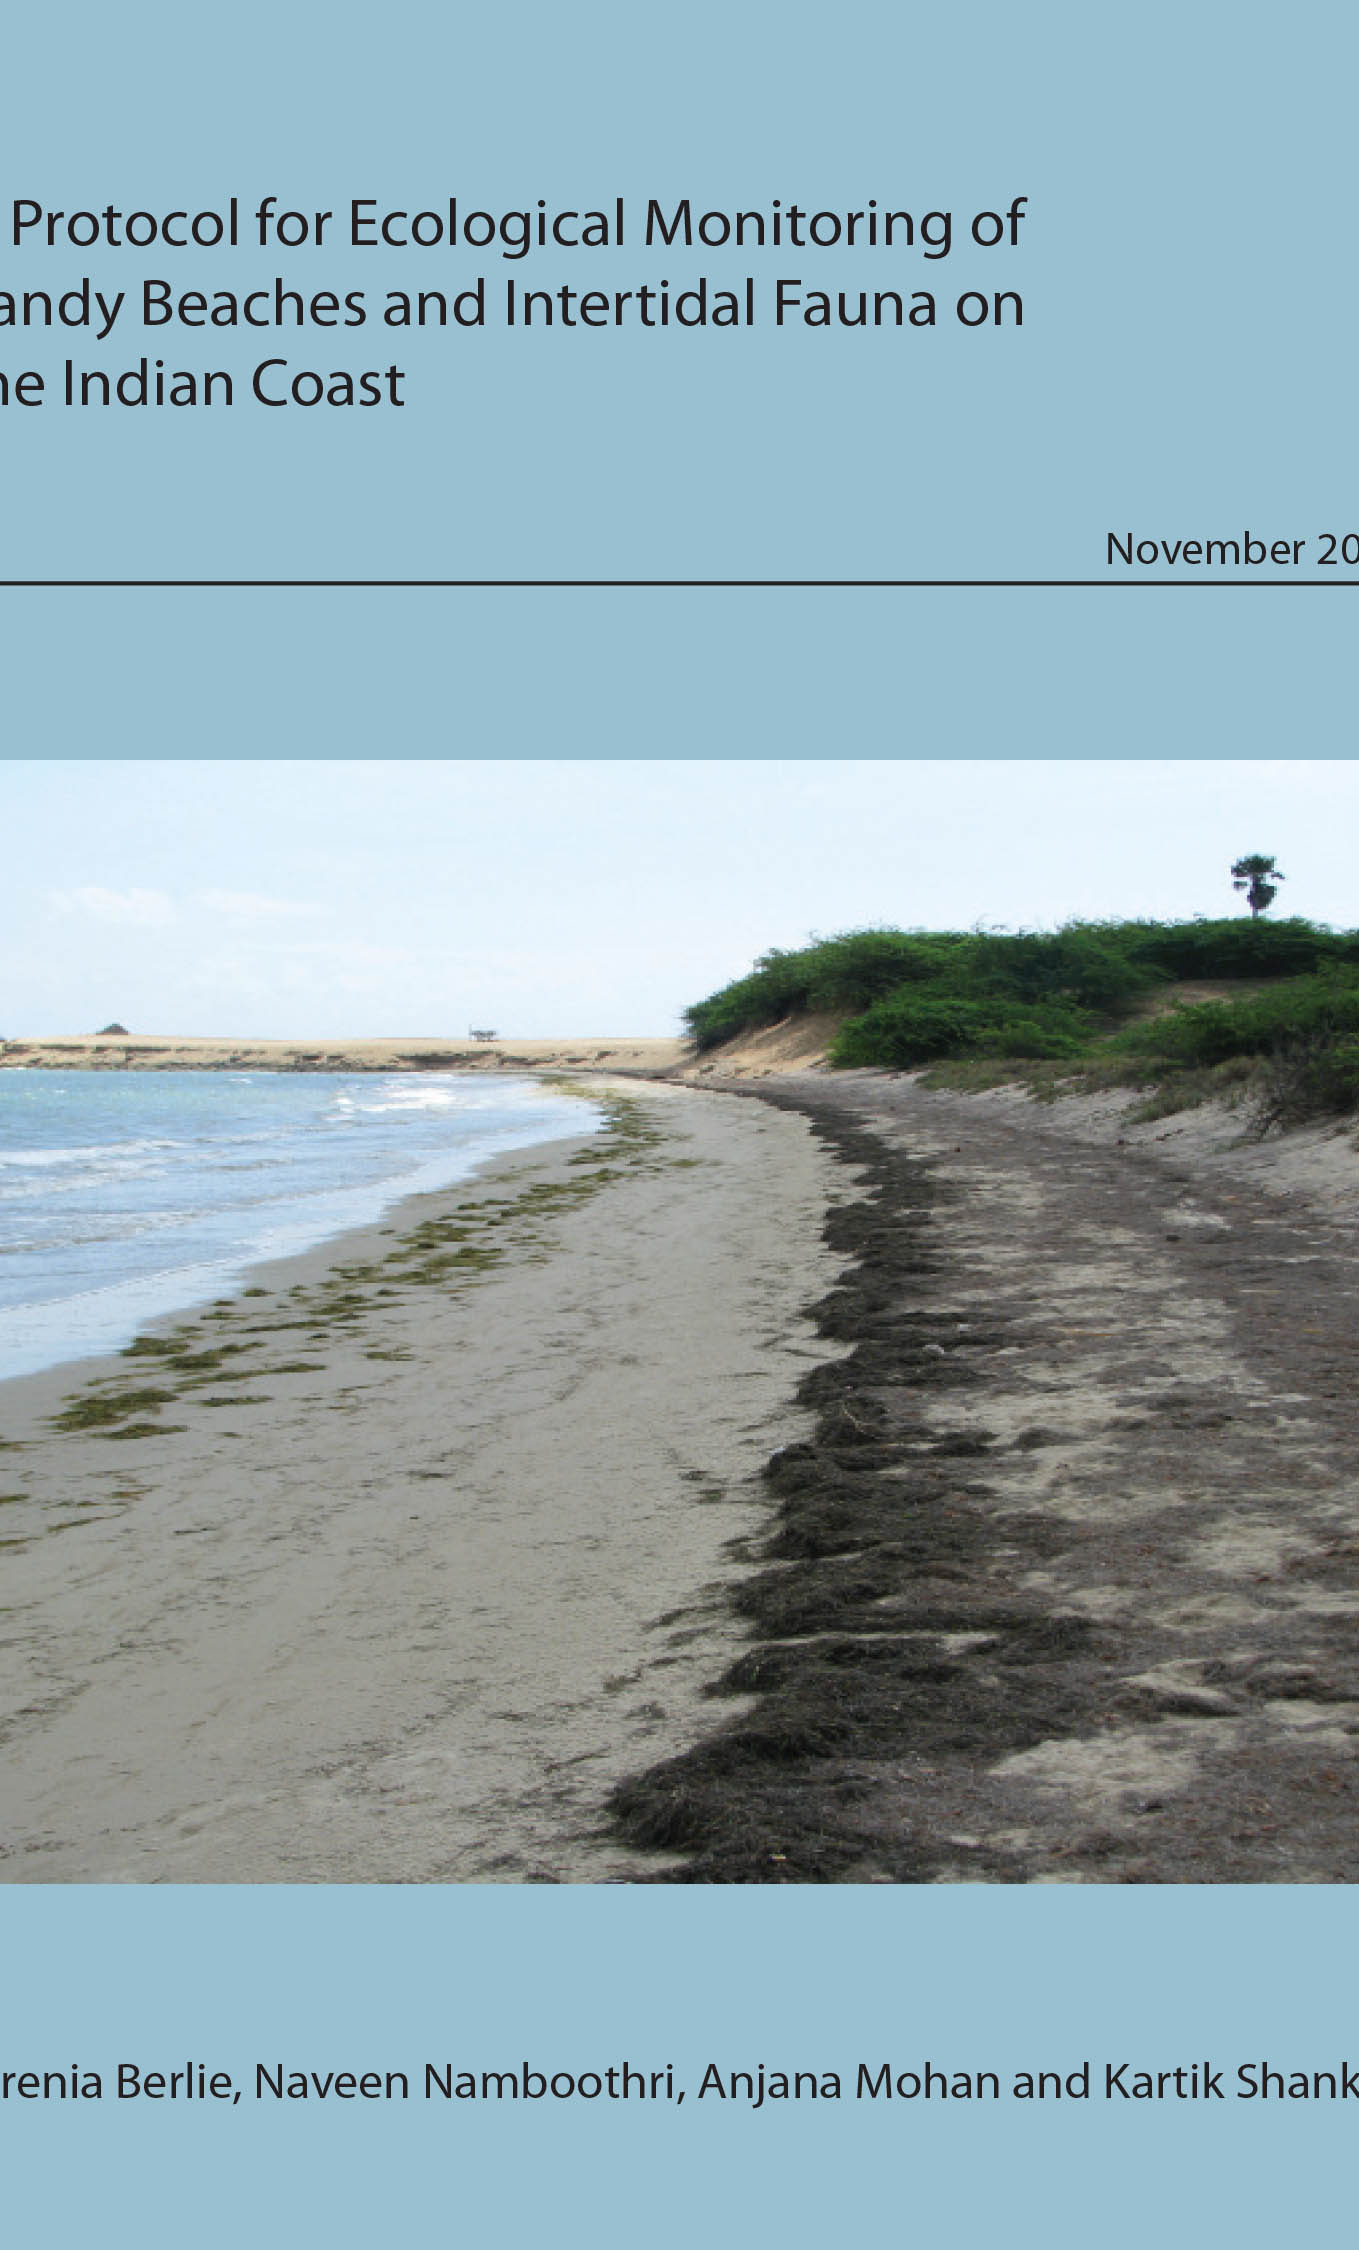 Monitoring of sandy beaches and intertidal fauna